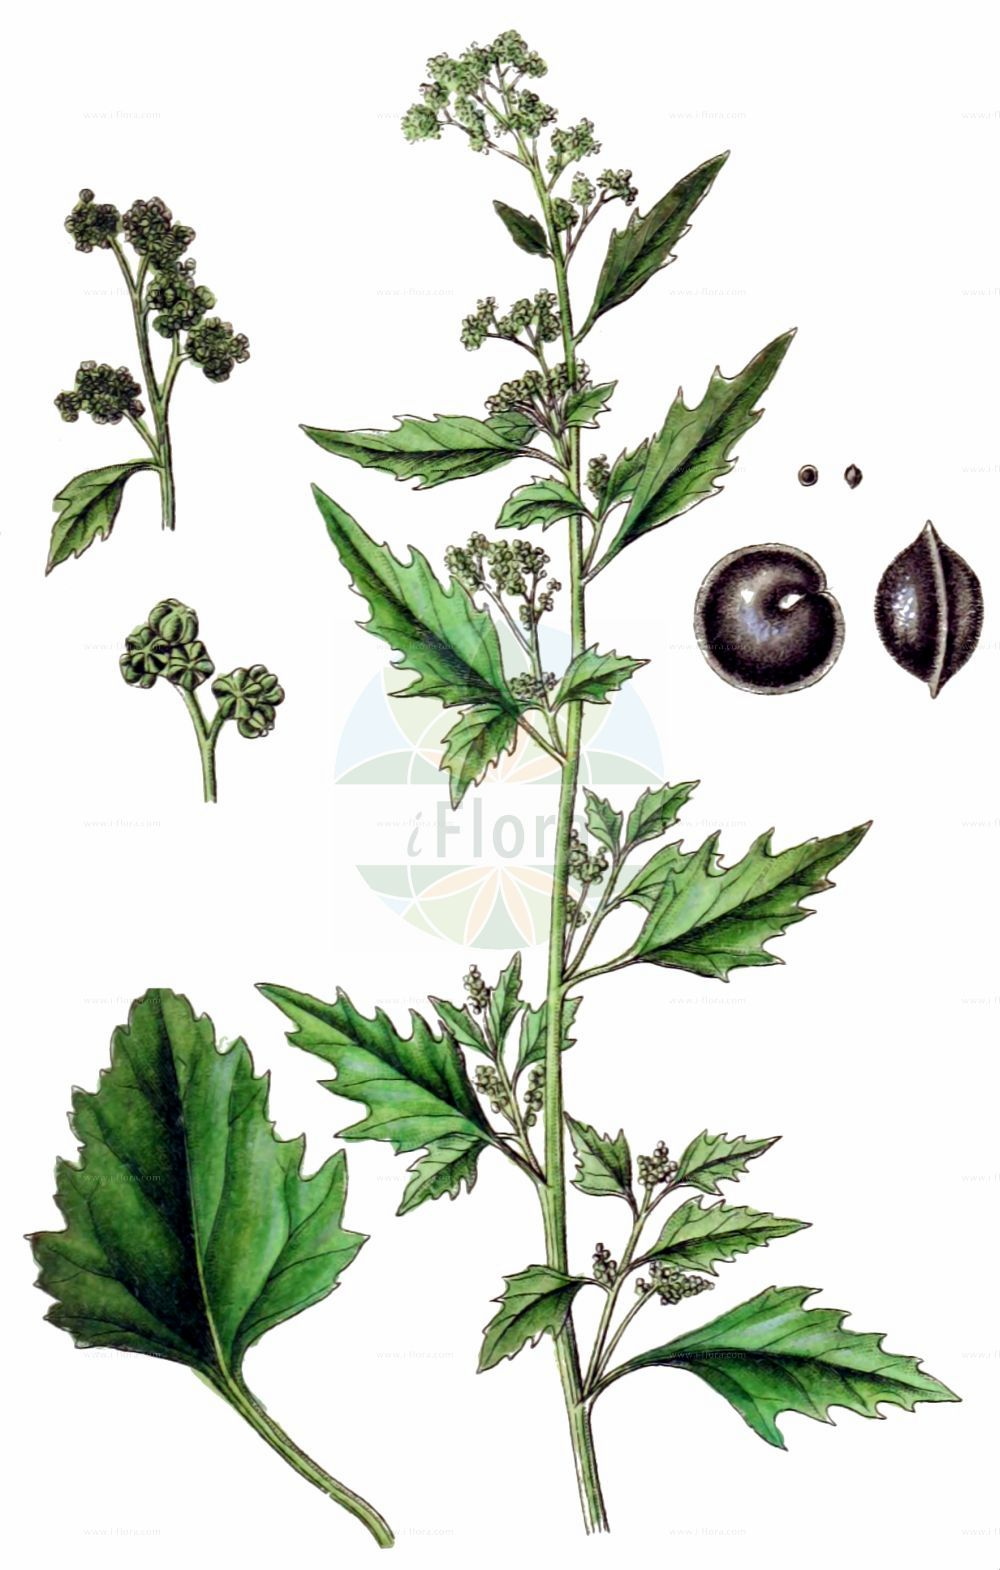 Historische Abbildung von Chenopodiastrum murale (Mauer-Gaensefuss - Nettle-leaved Goosefoot). Das Bild zeigt Blatt, Bluete, Frucht und Same. ---- Historical Drawing of Chenopodiastrum murale (Mauer-Gaensefuss - Nettle-leaved Goosefoot).The image is showing leaf, flower, fruit and seed.(Chenopodiastrum murale,Mauer-Gaensefuss,Nettle-leaved Goosefoot,Chenopodiastrum murale,Chenopodium murale,Mauer-Gaensefuss,Nettle-leaved Goosefoot,Nettle-leaf Goosefoot,Nettle-leaved Fat-Hen,Wall Goosefoot,Chenopodiastrum,Amaranthaceae,Fuchsschwanzgewaechse,Pigweed family,Blatt,Bluete,Frucht,Same,leaf,flower,fruit,seed,Sturm (1796f))